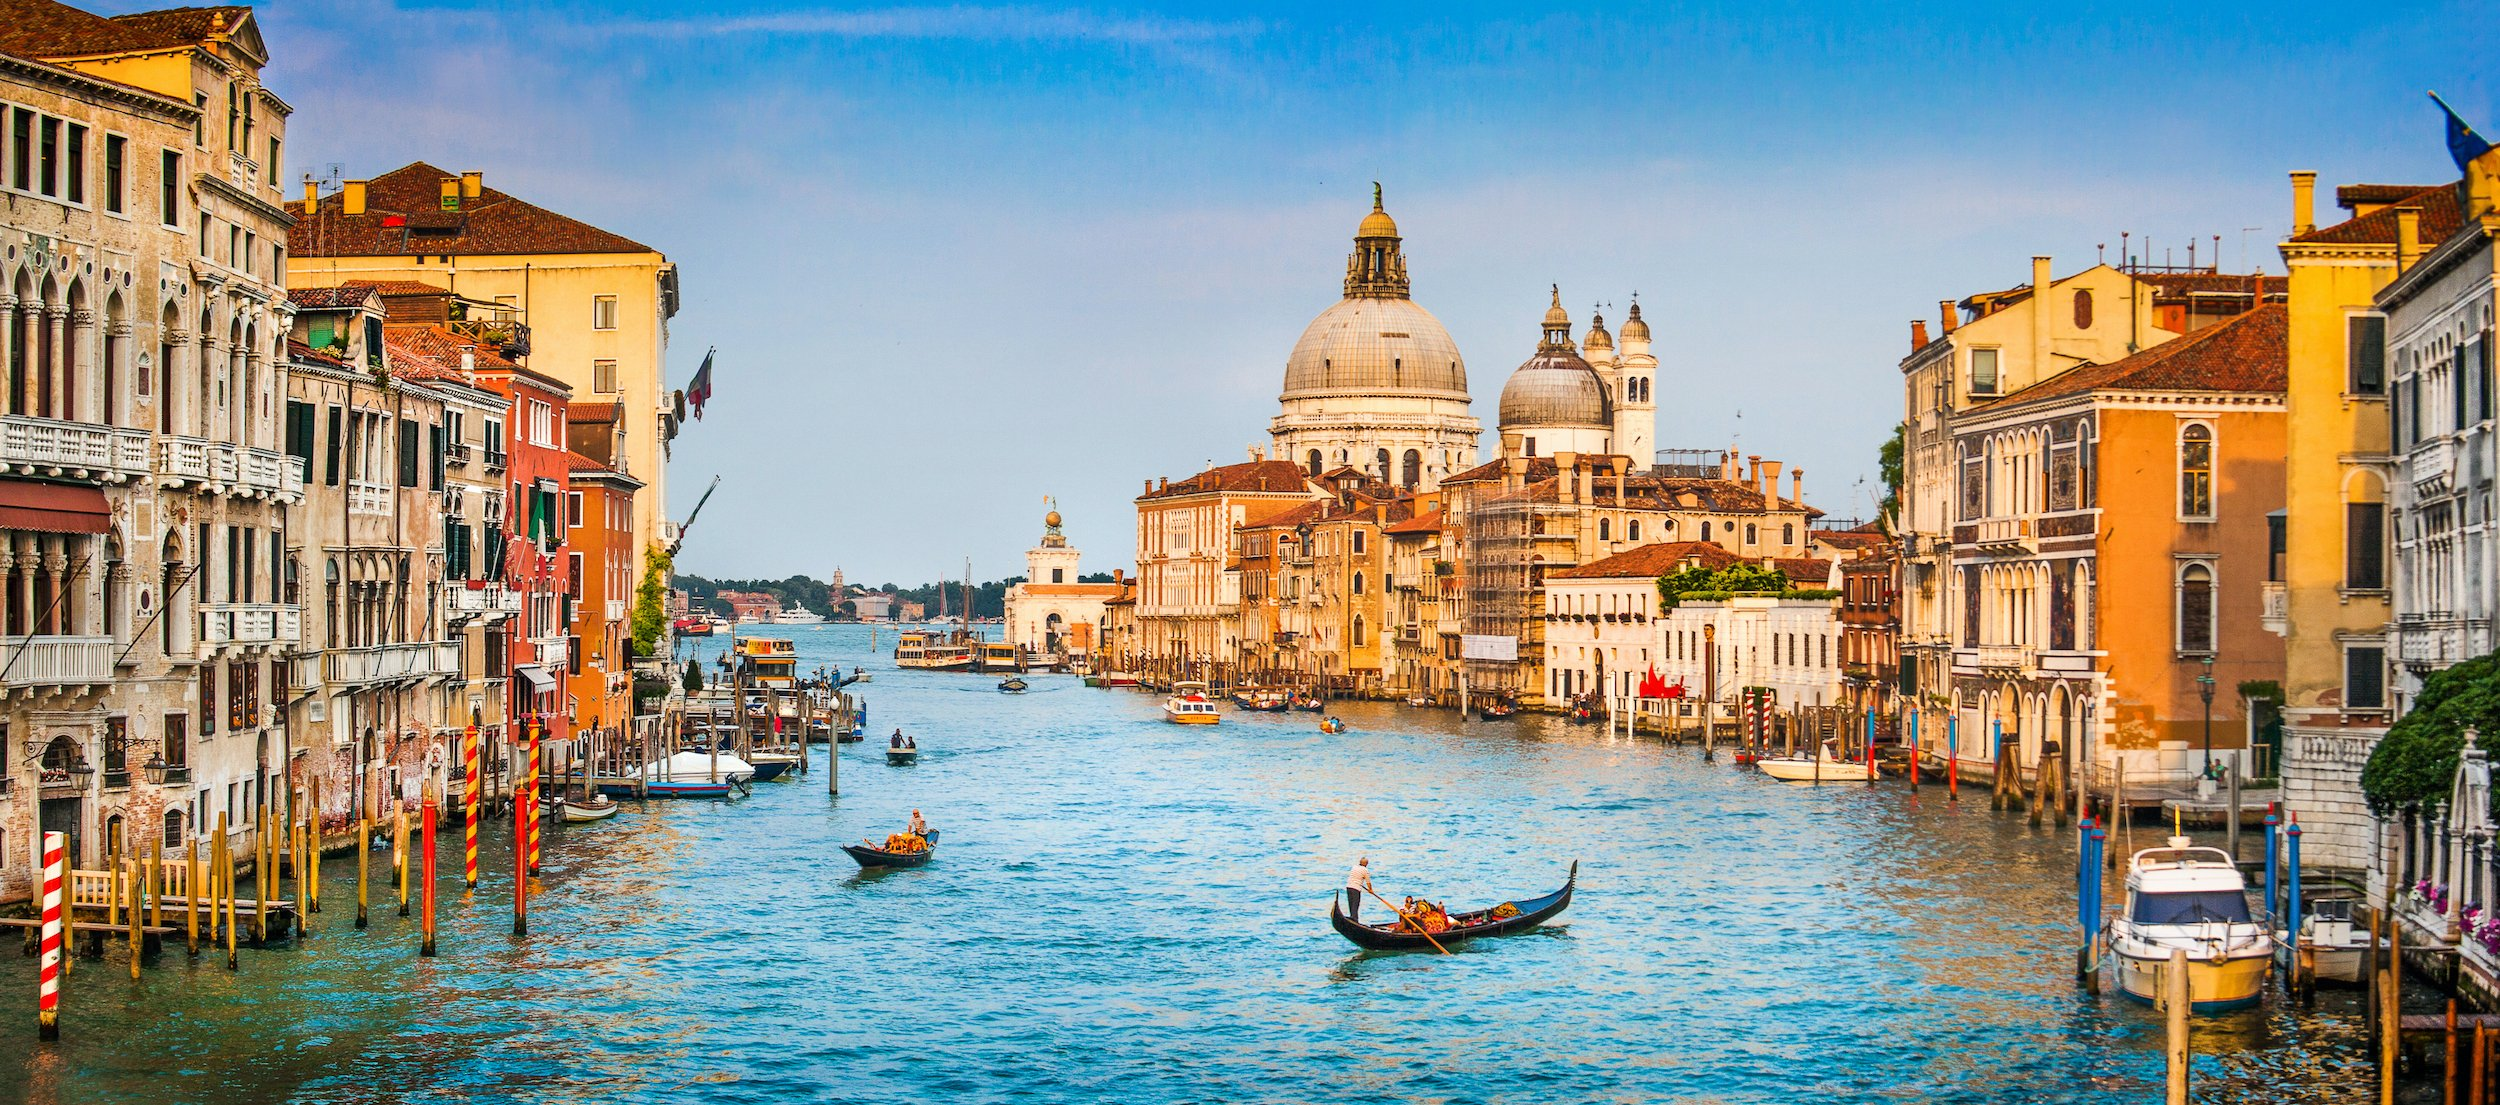 Best Of Venice, Verona & Milan 9 Day Tour Package_7